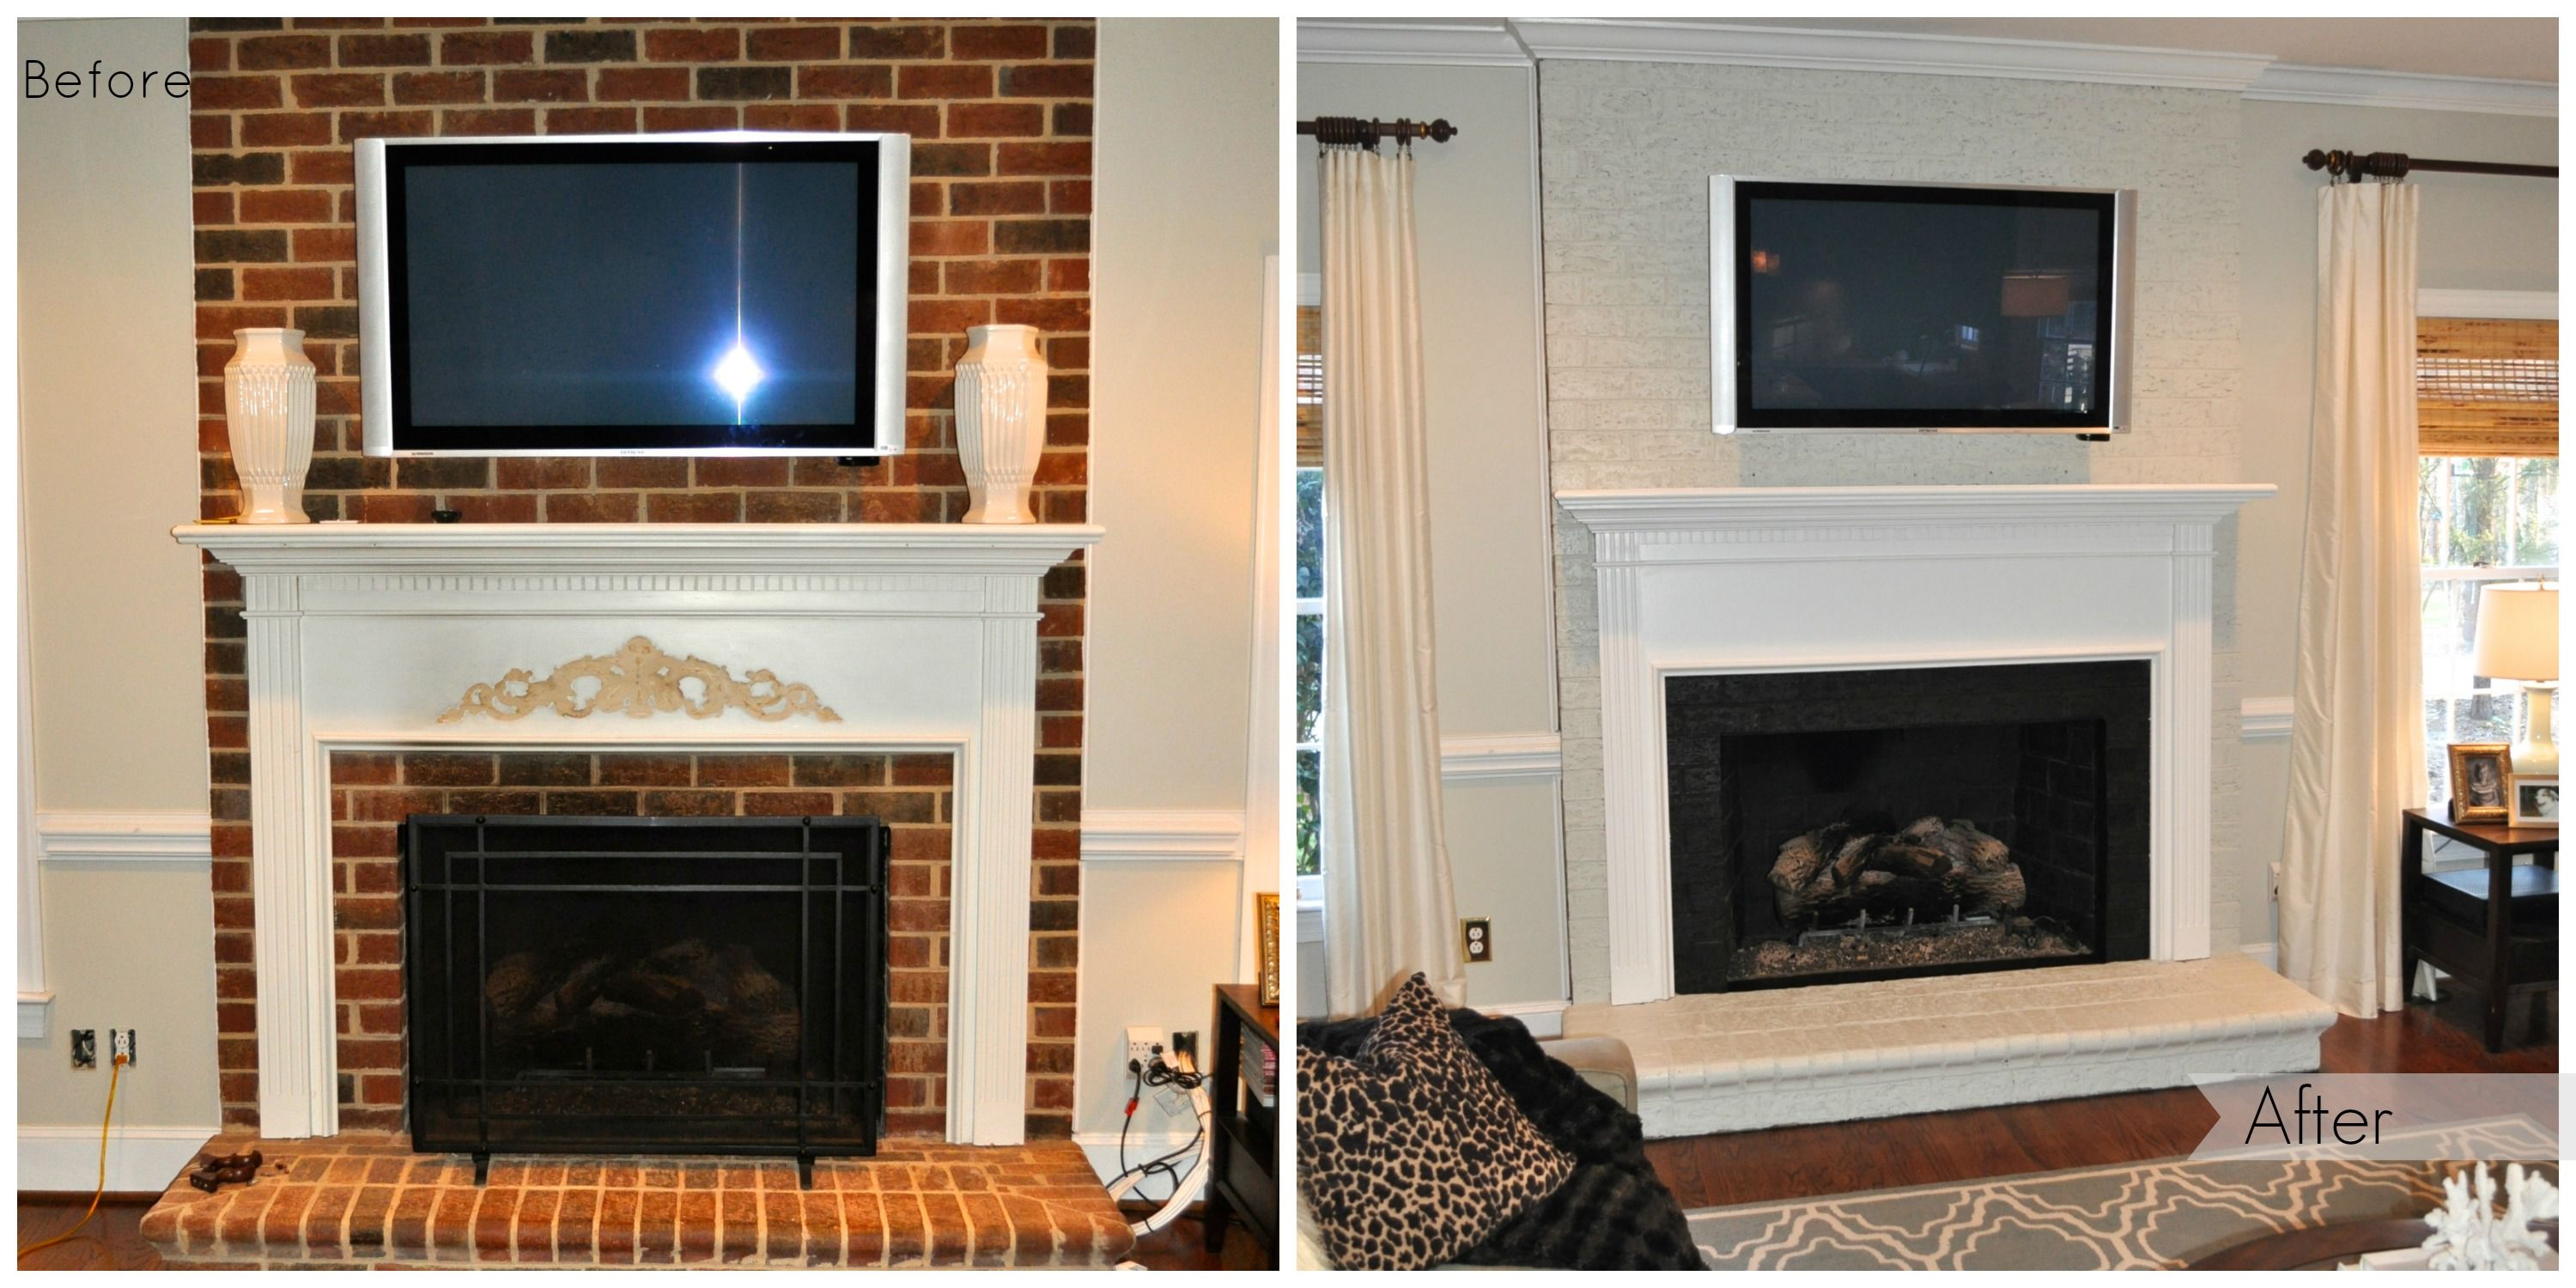 painted brick fireplace before & after! paint the brick the same